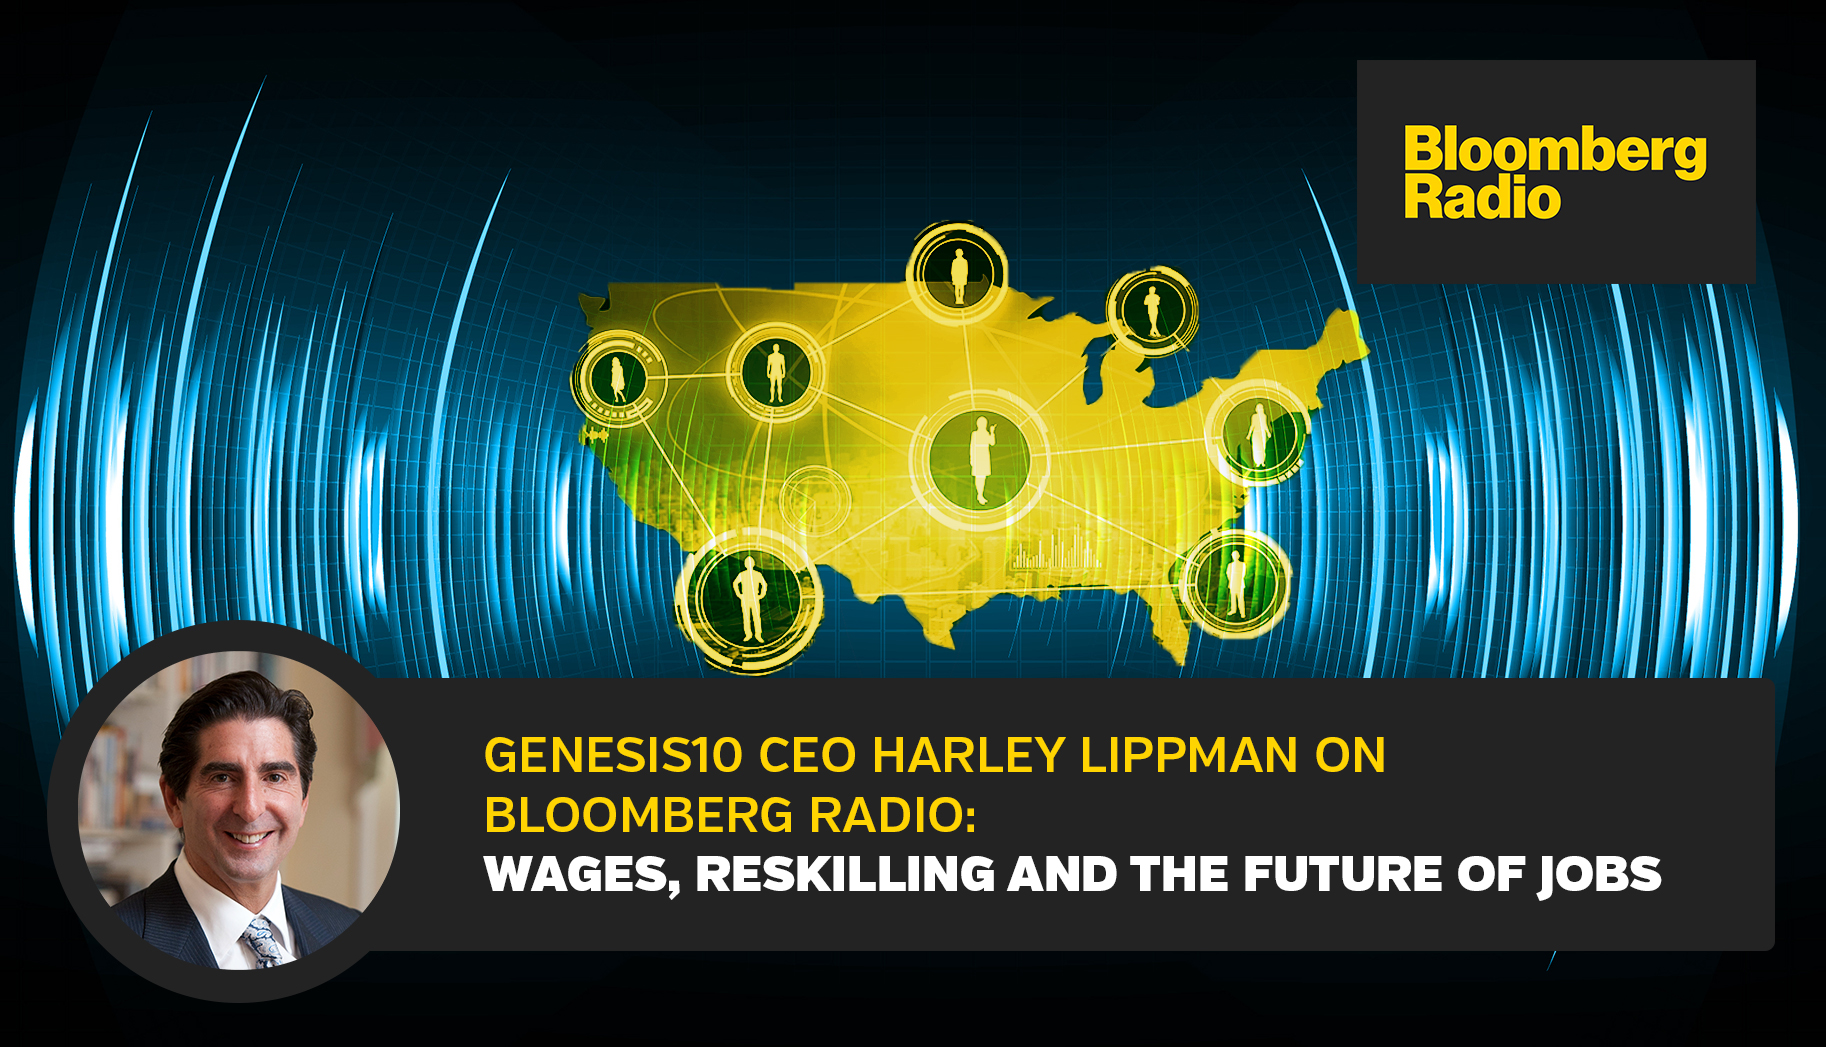 LinkedIn_Harley Lippman on Bloomberg Radio Wages, Reskilling and the Future of Jobs